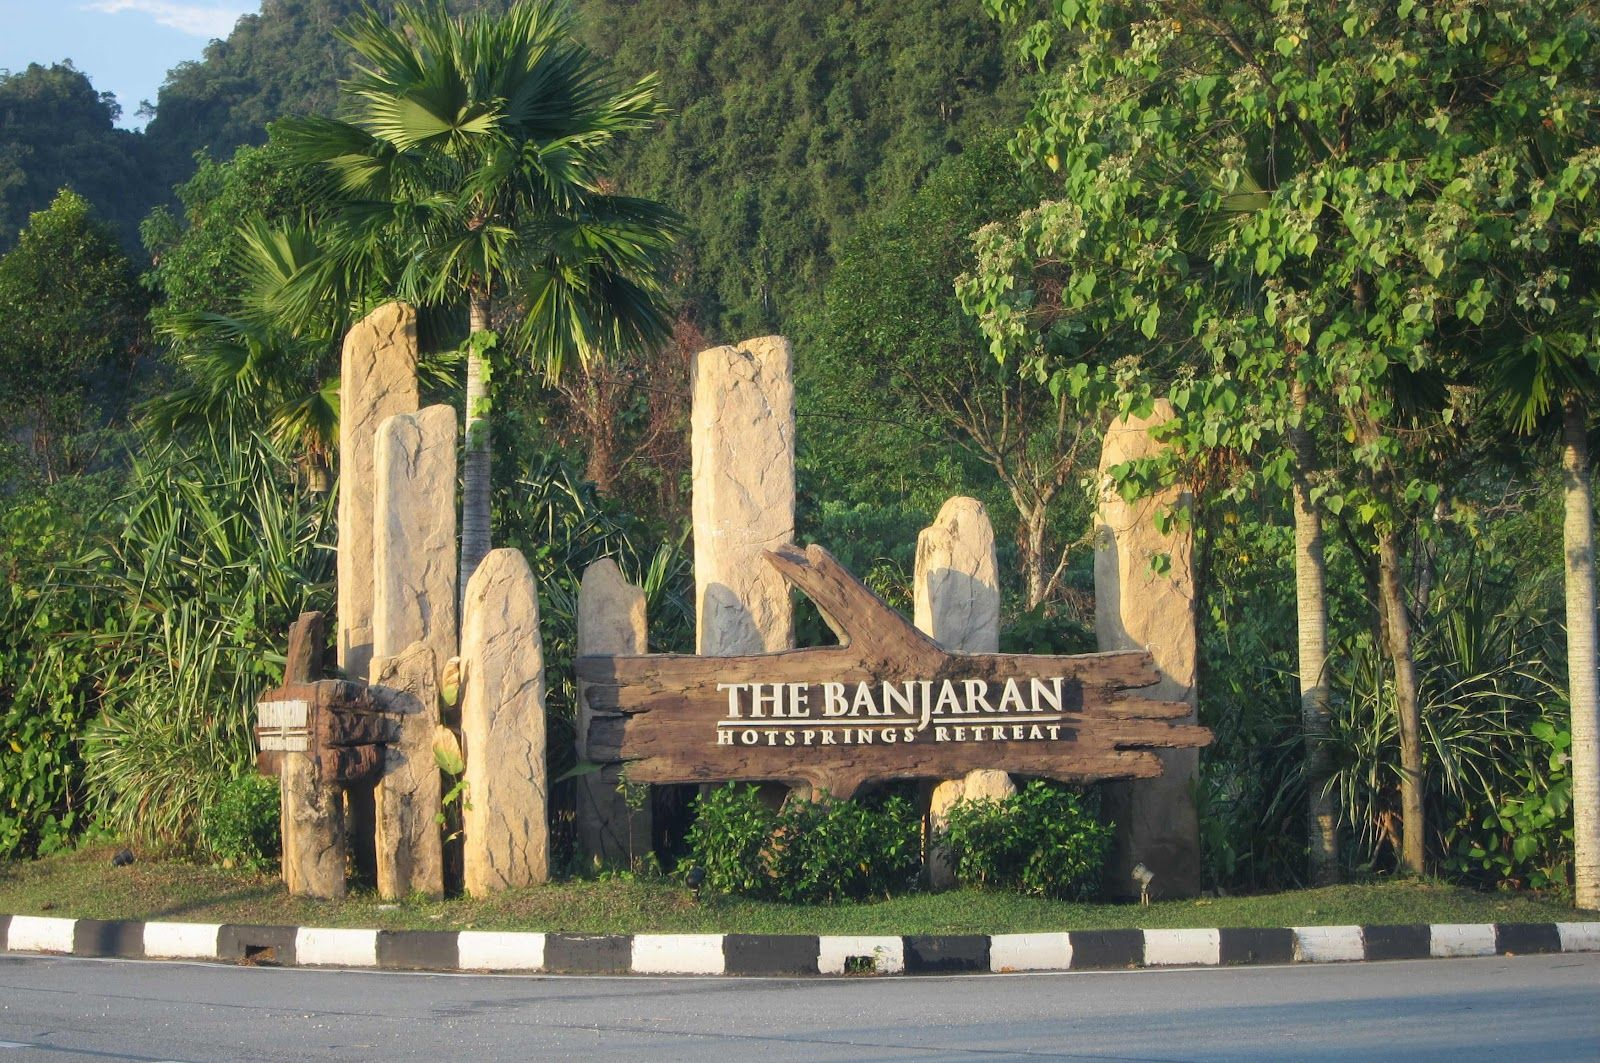 Natural Entrance The Banjaran Monument Signage Monument Signs Entrance Signage